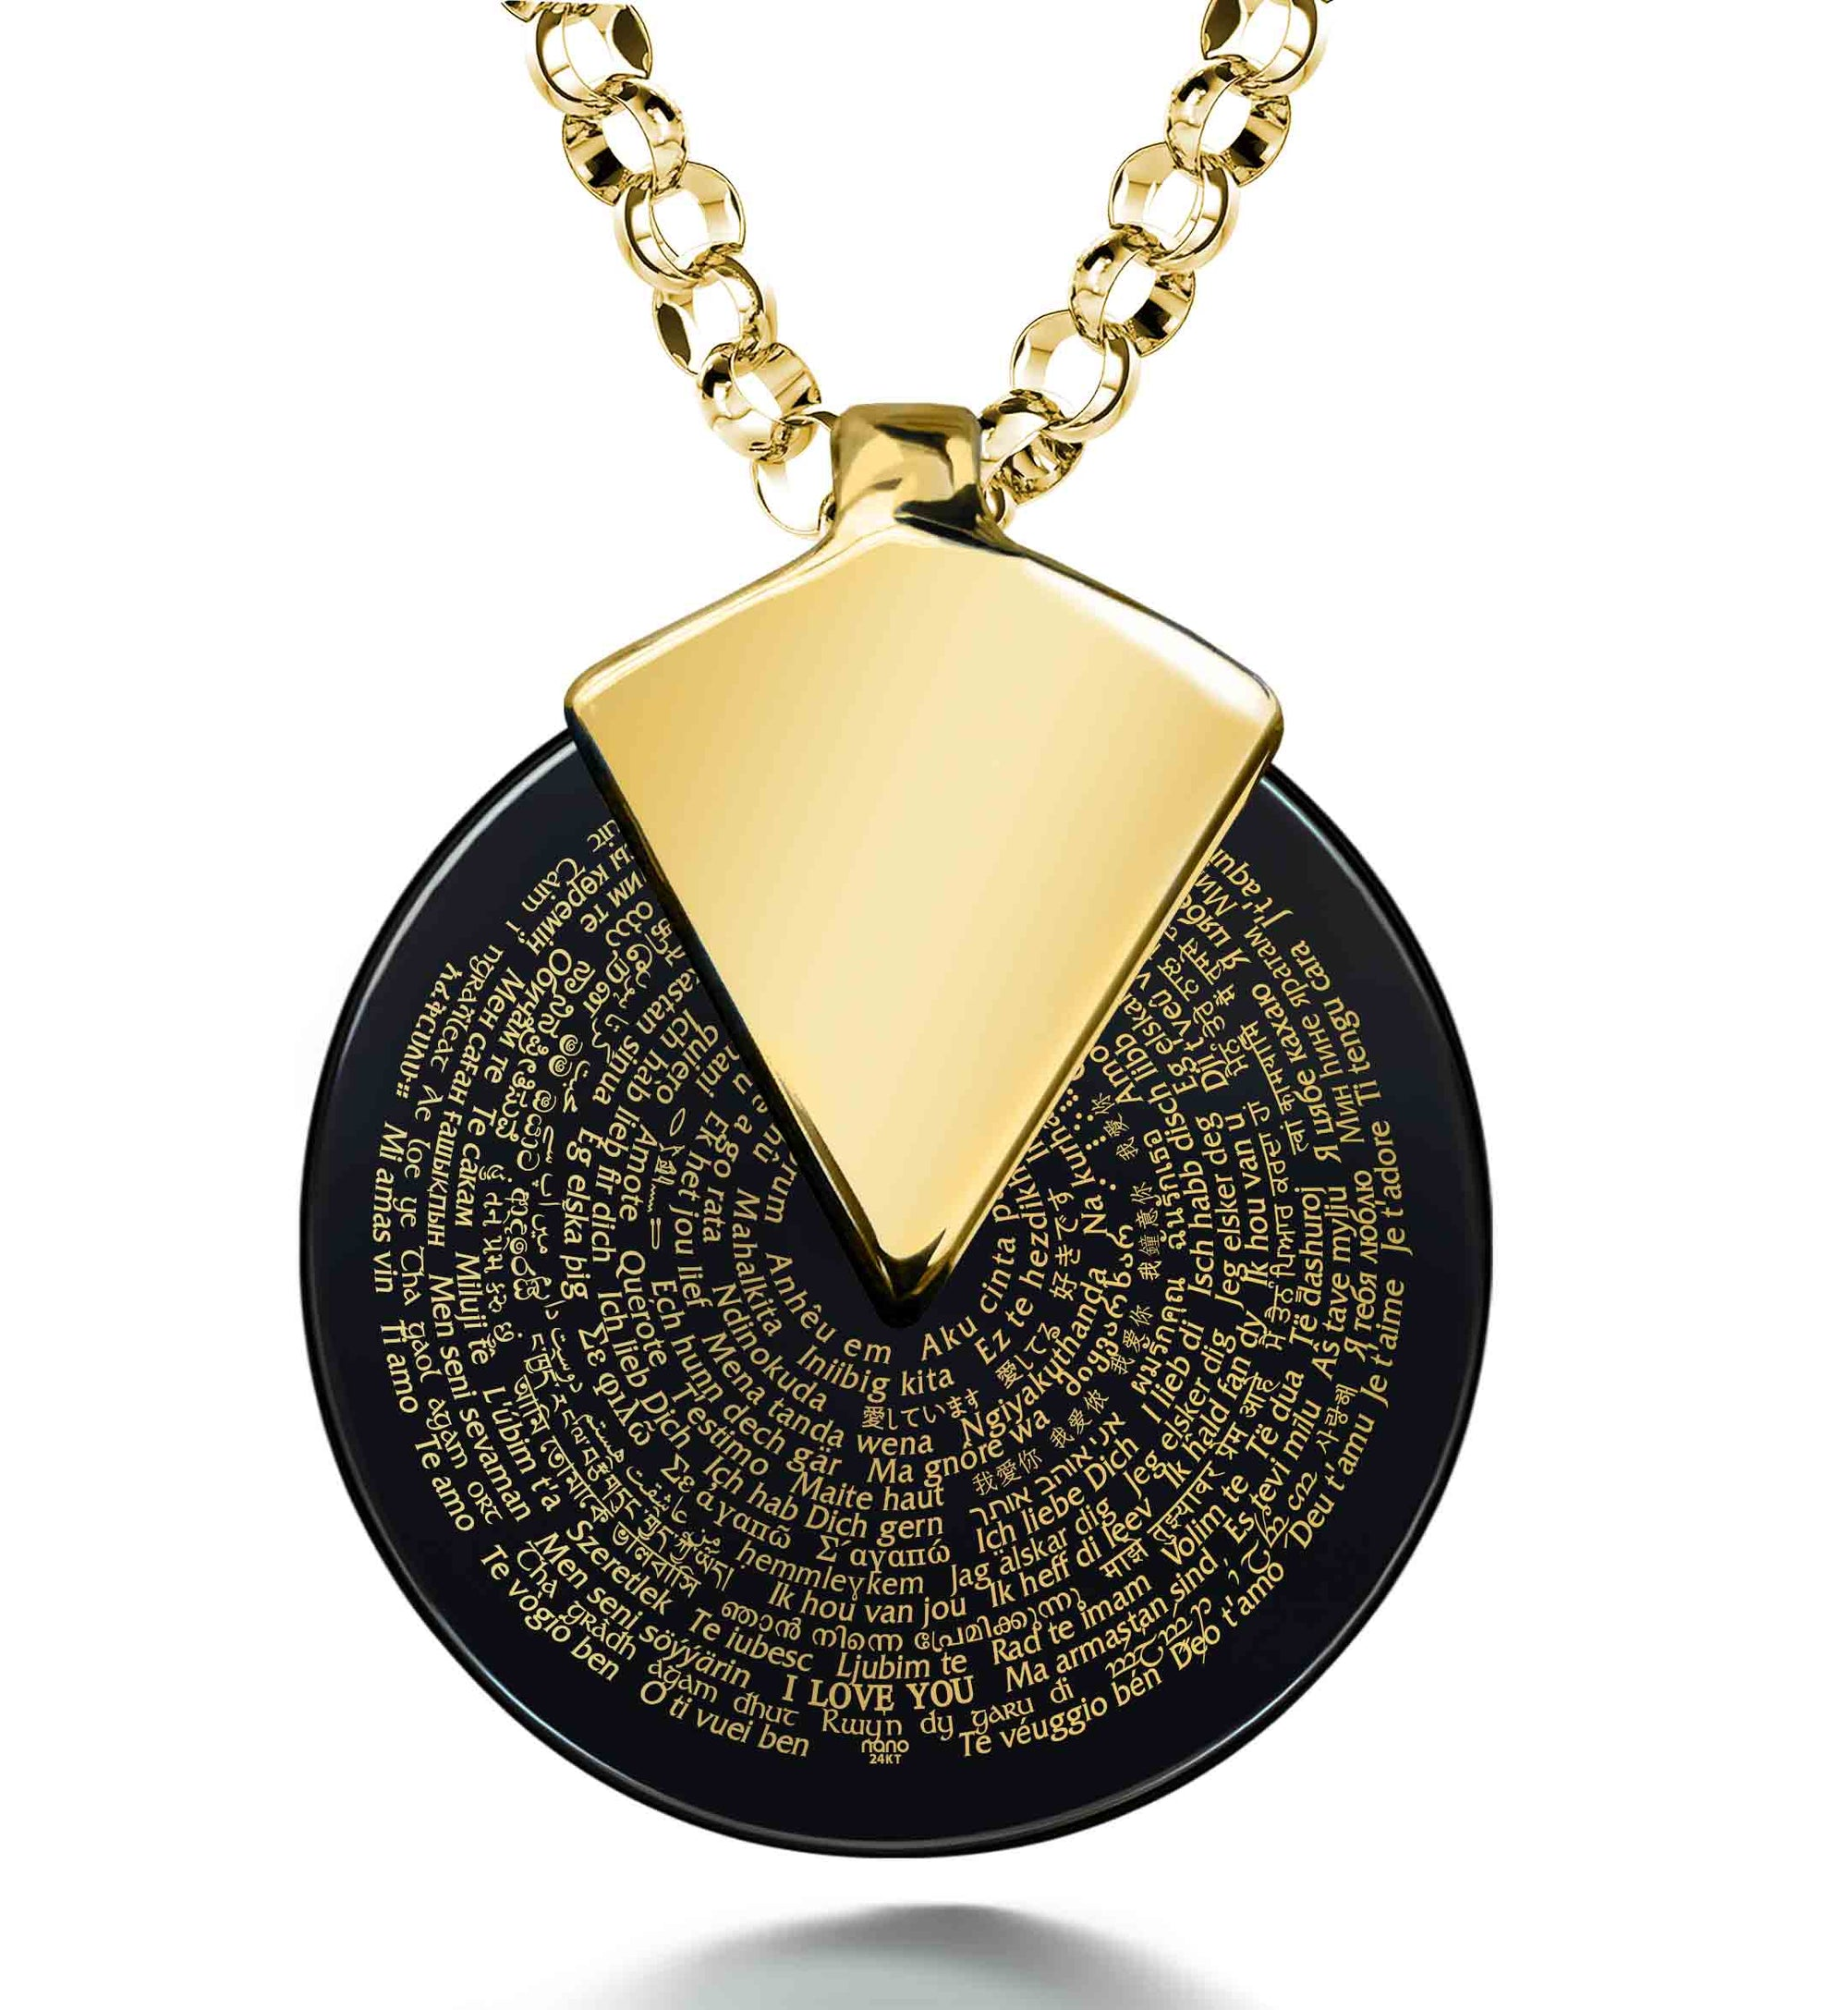 I Love You Necklace in 120 Languages 24k Gold Inscribed on Spinning Round Onyx